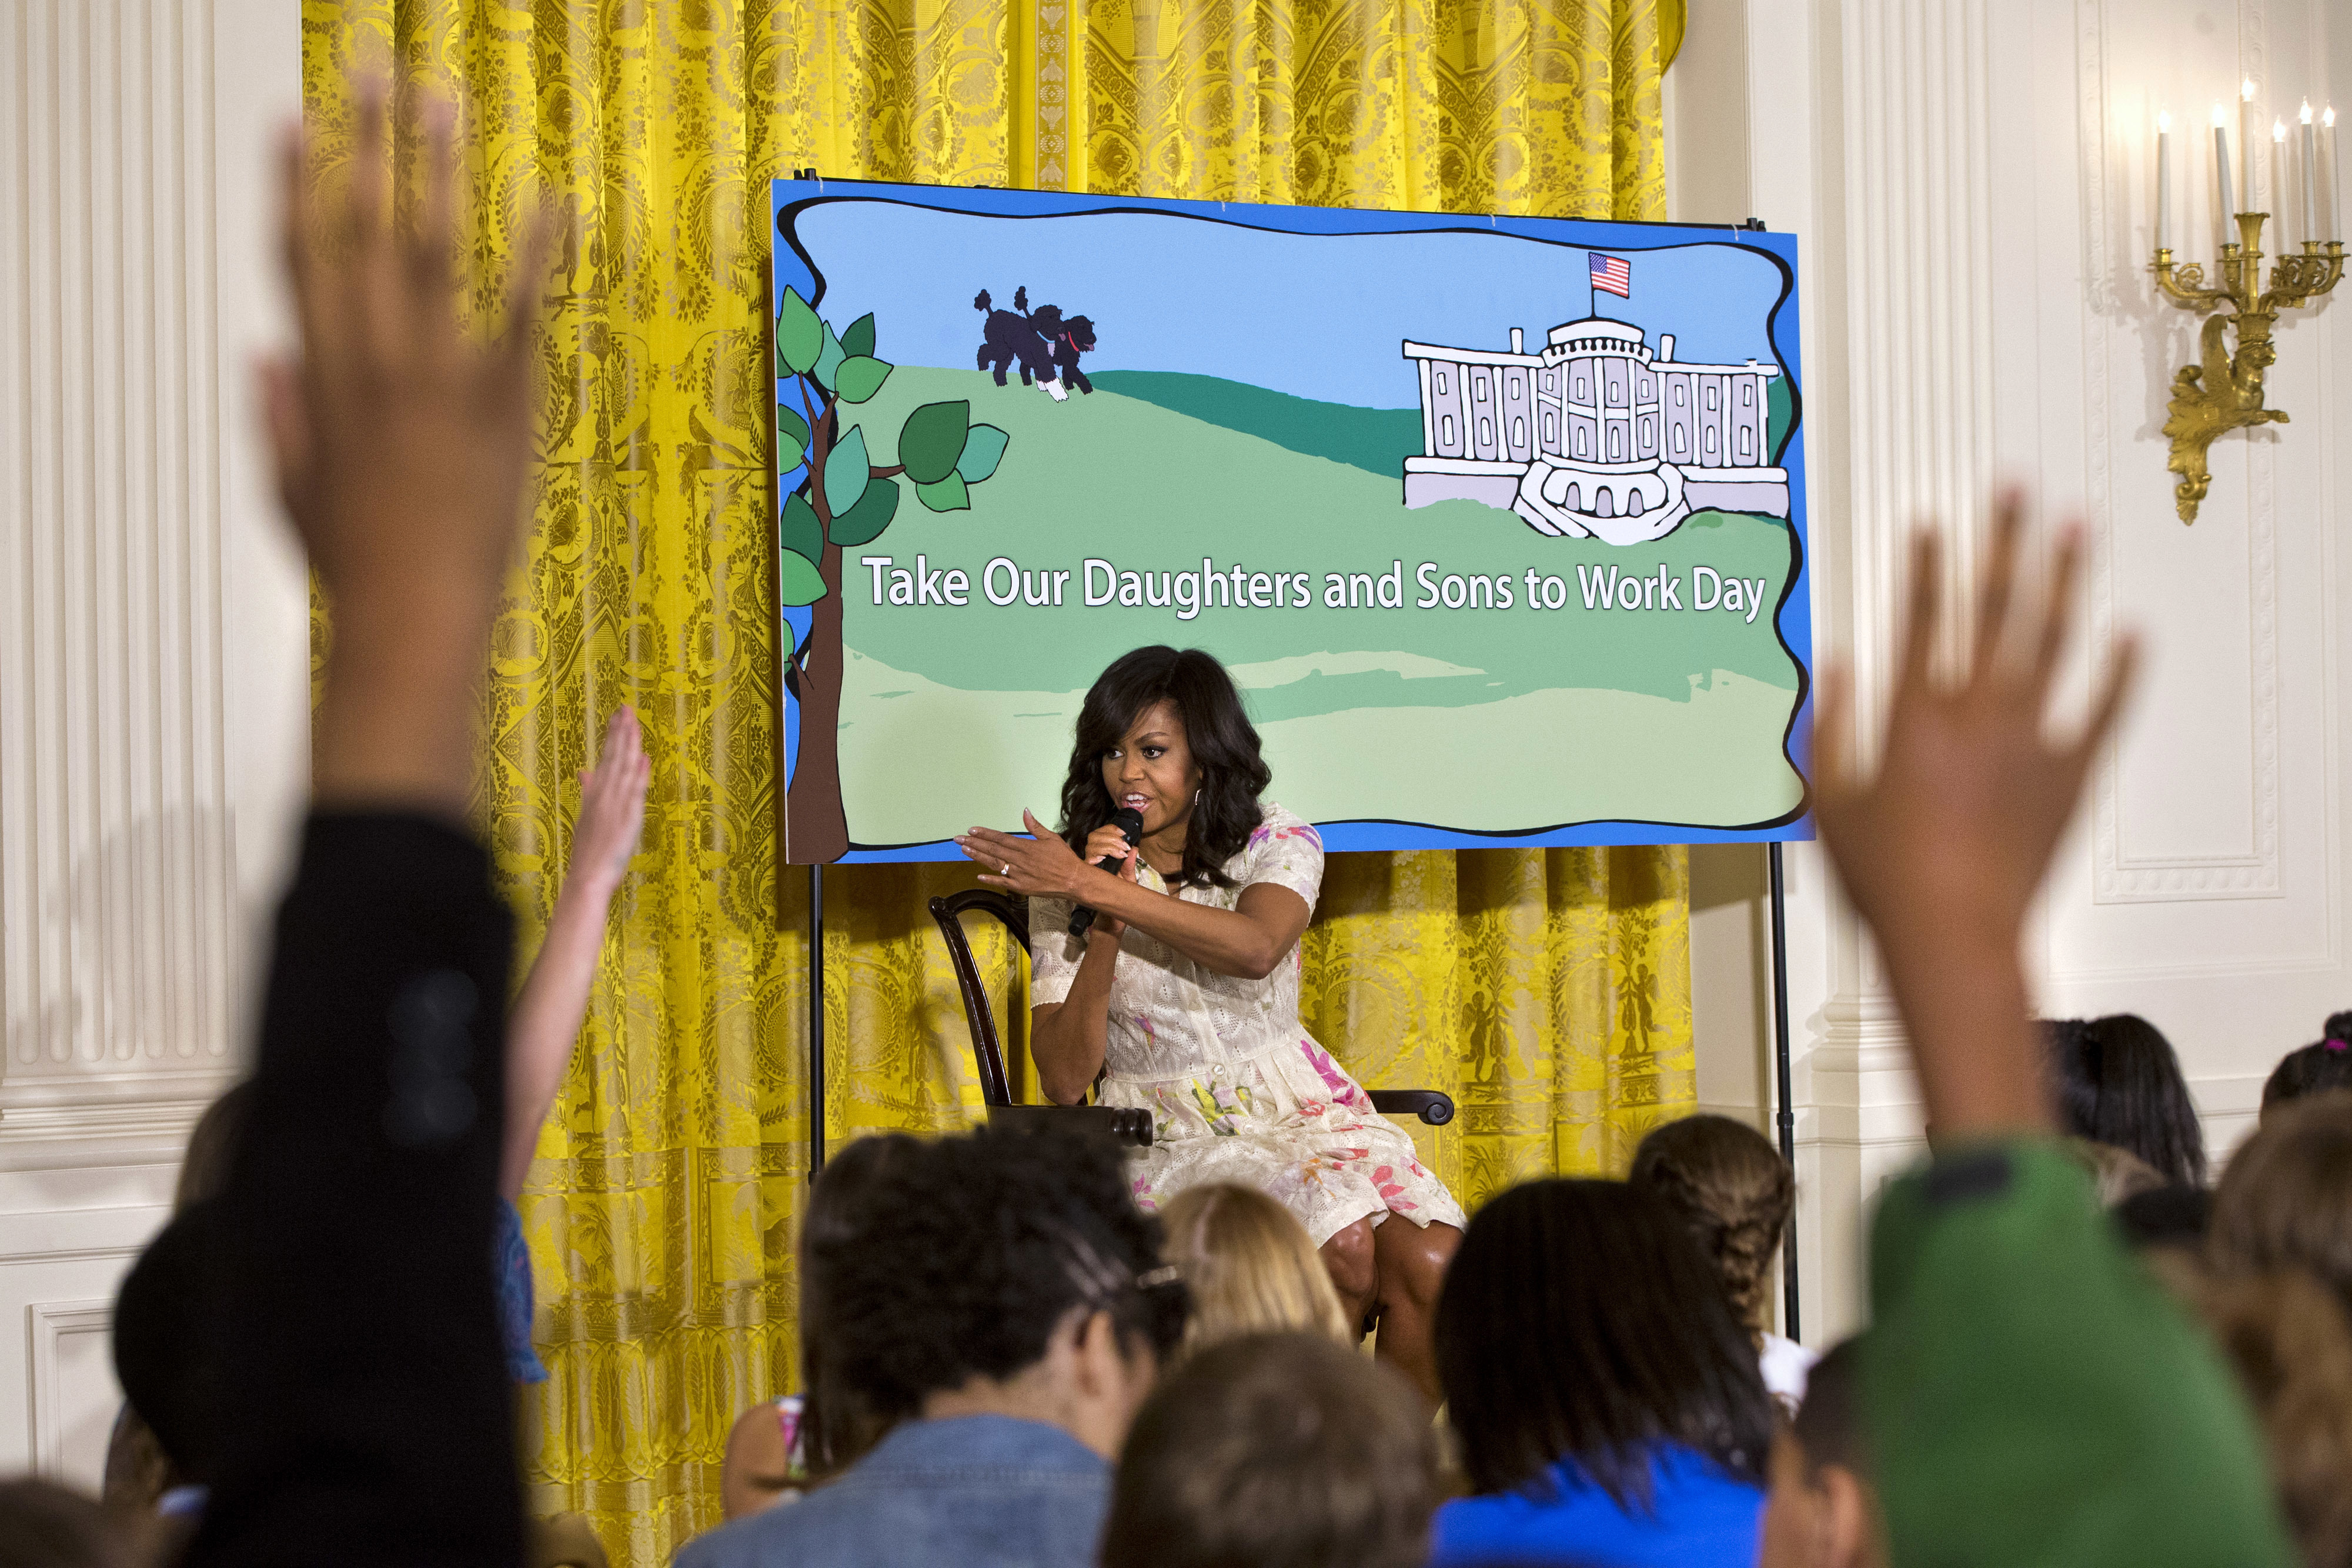 PHOTOS: Take Our Daughters and Sons to Work Day at the White House